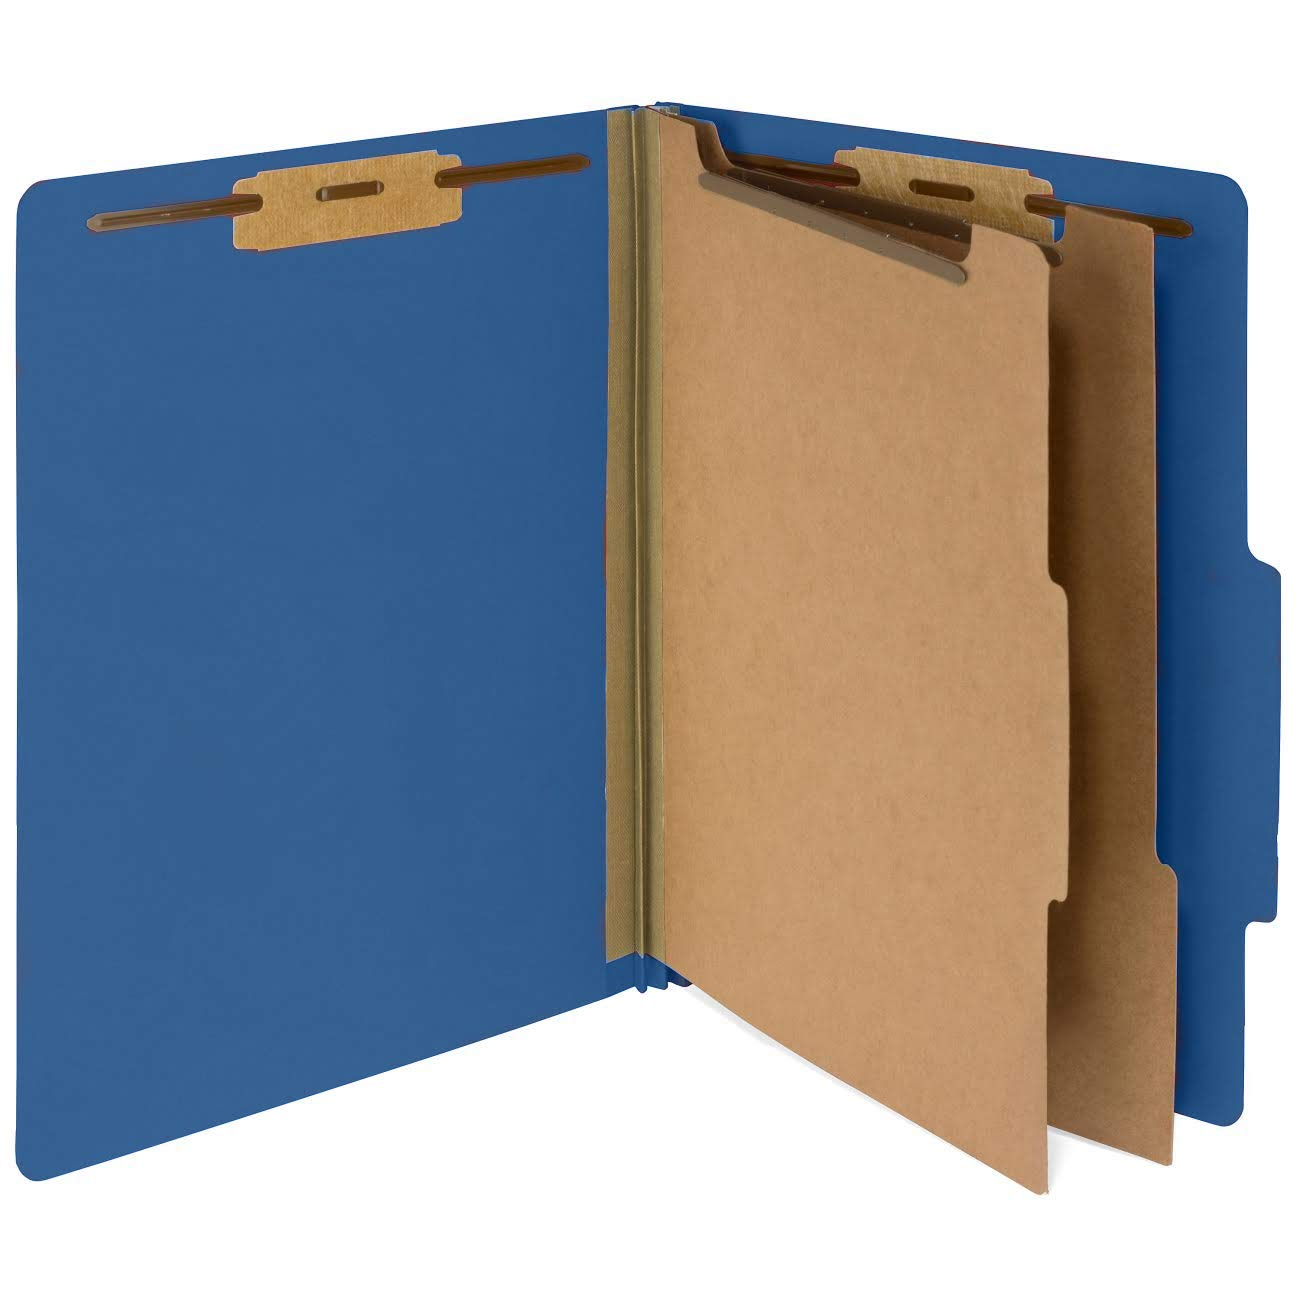 10 Dark Blue Classification Folders - 2 Divider - 2 Inch Tyvek Expansions - Durable 2 Prongs Designed to Organize Standard Medical Files, Law Client Files - Letter Size, Dark Blue, 10 Pack by Blue Summit Supplies